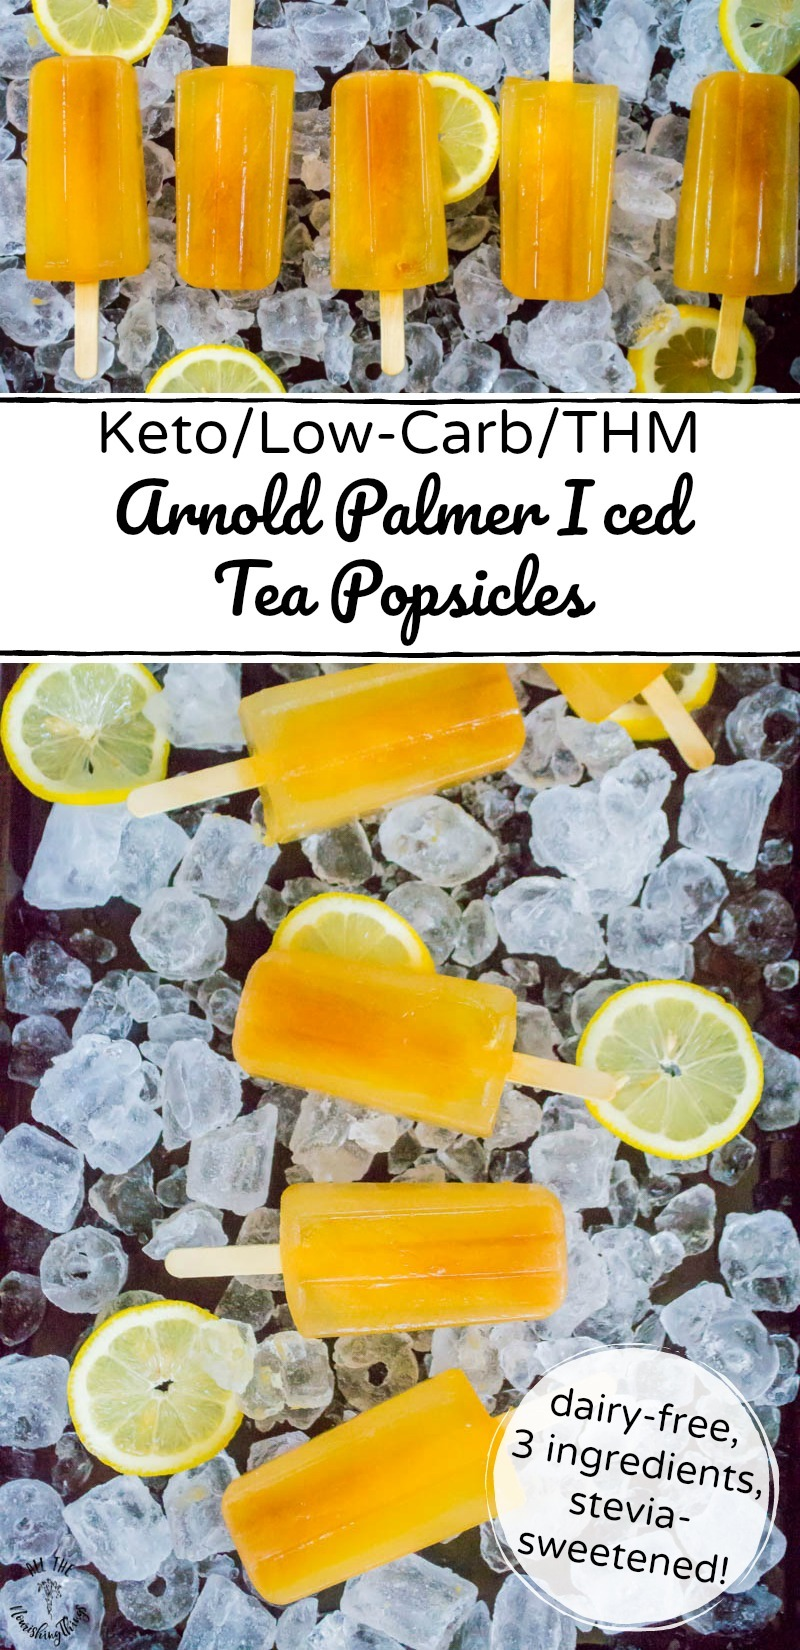 collage of 2 images of keto arnold palmer iced tea popsicles with text overlay